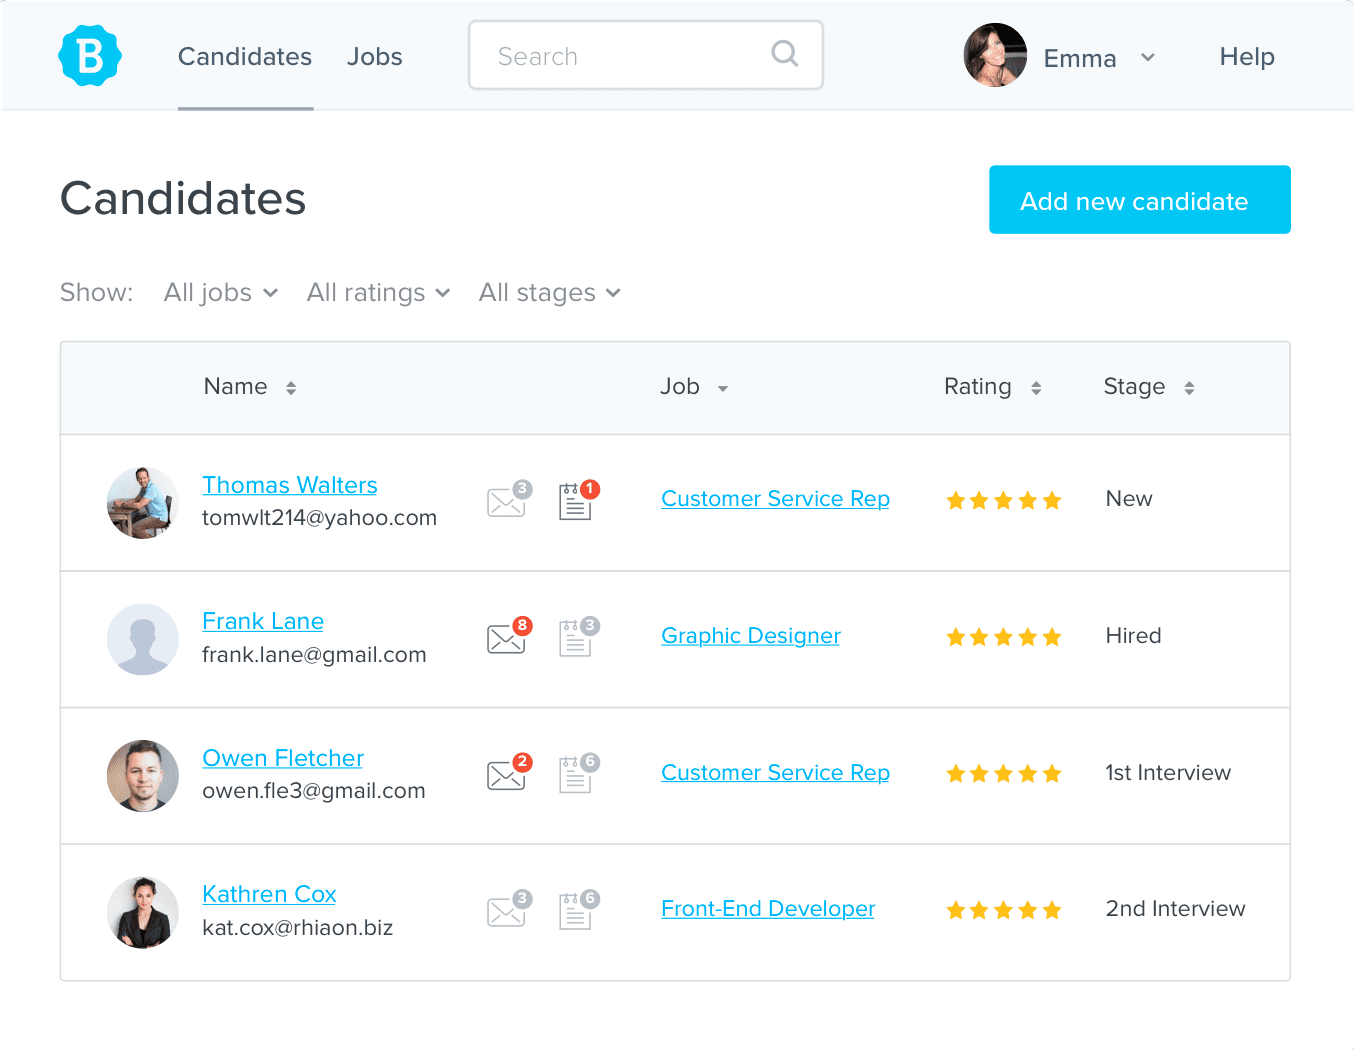 Betterteam allows users to manage all applicants centrally, and filter to view only applicants associated with a specific job, or in a particular hiring stage